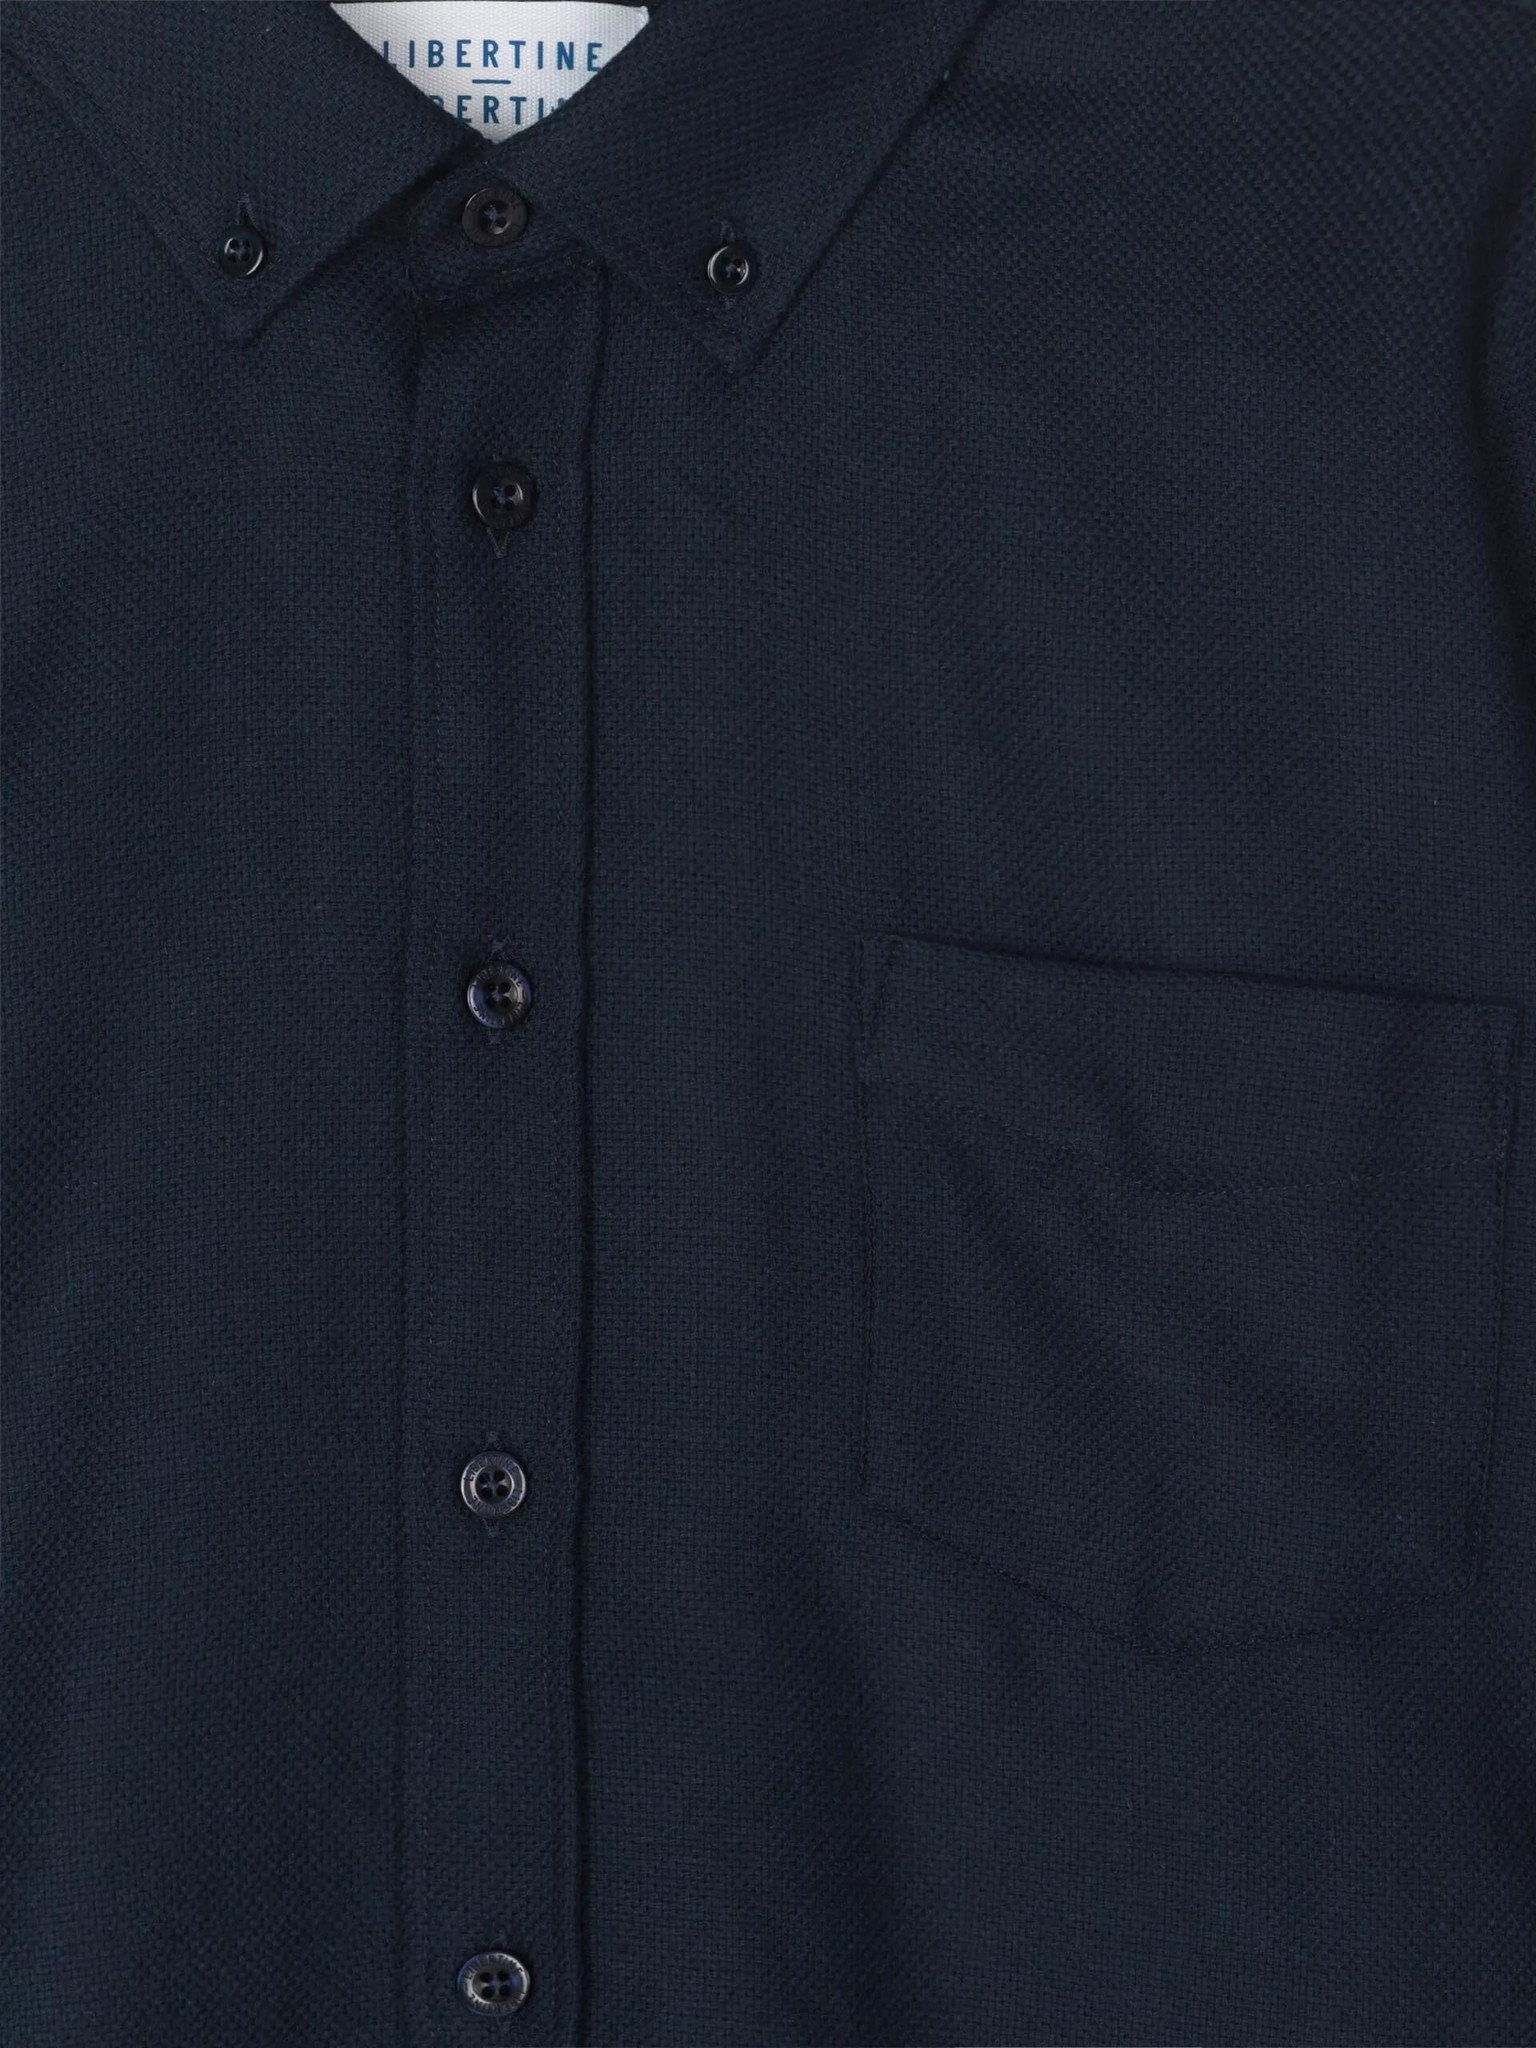 Hunter Dark Navy Shirt 20.04-3